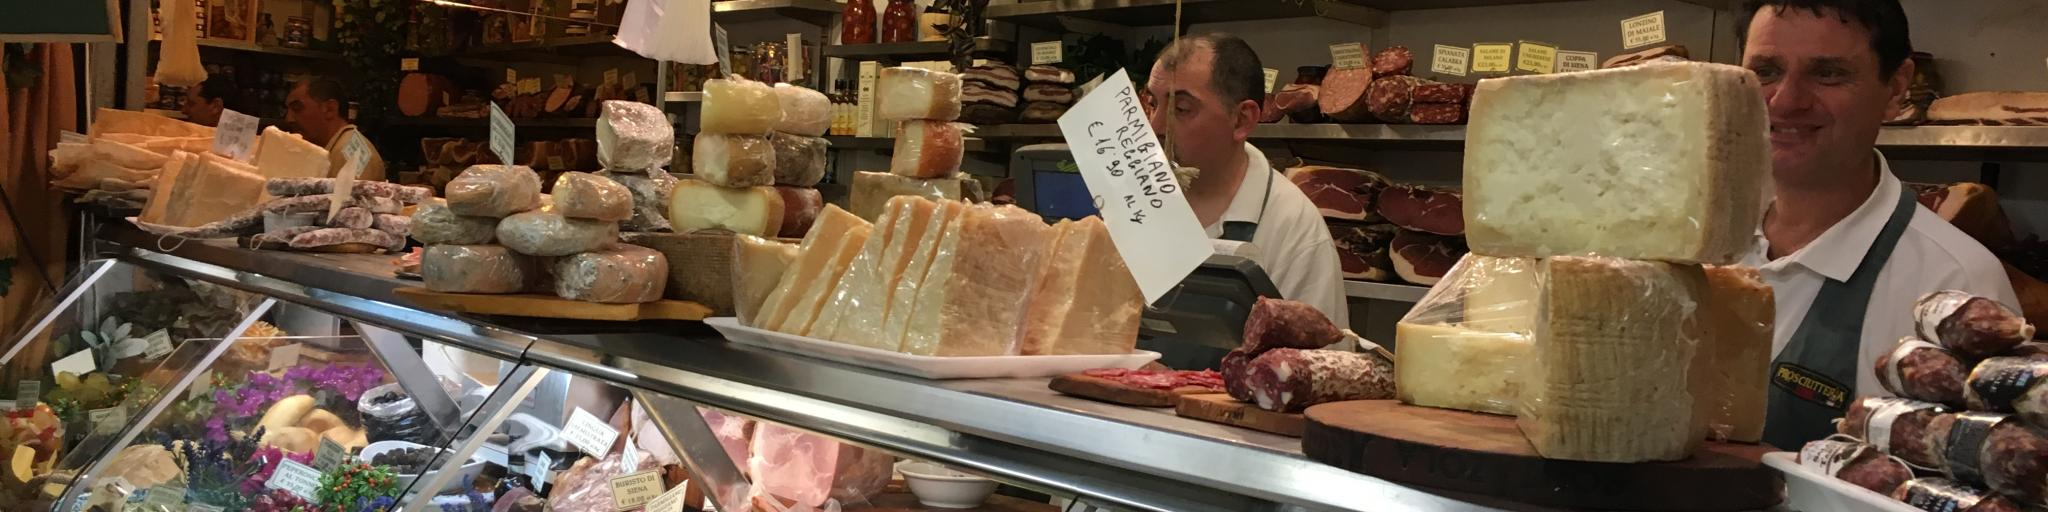 Vendors selling cheese, meat and local produce in Mercato Centrale in Florence